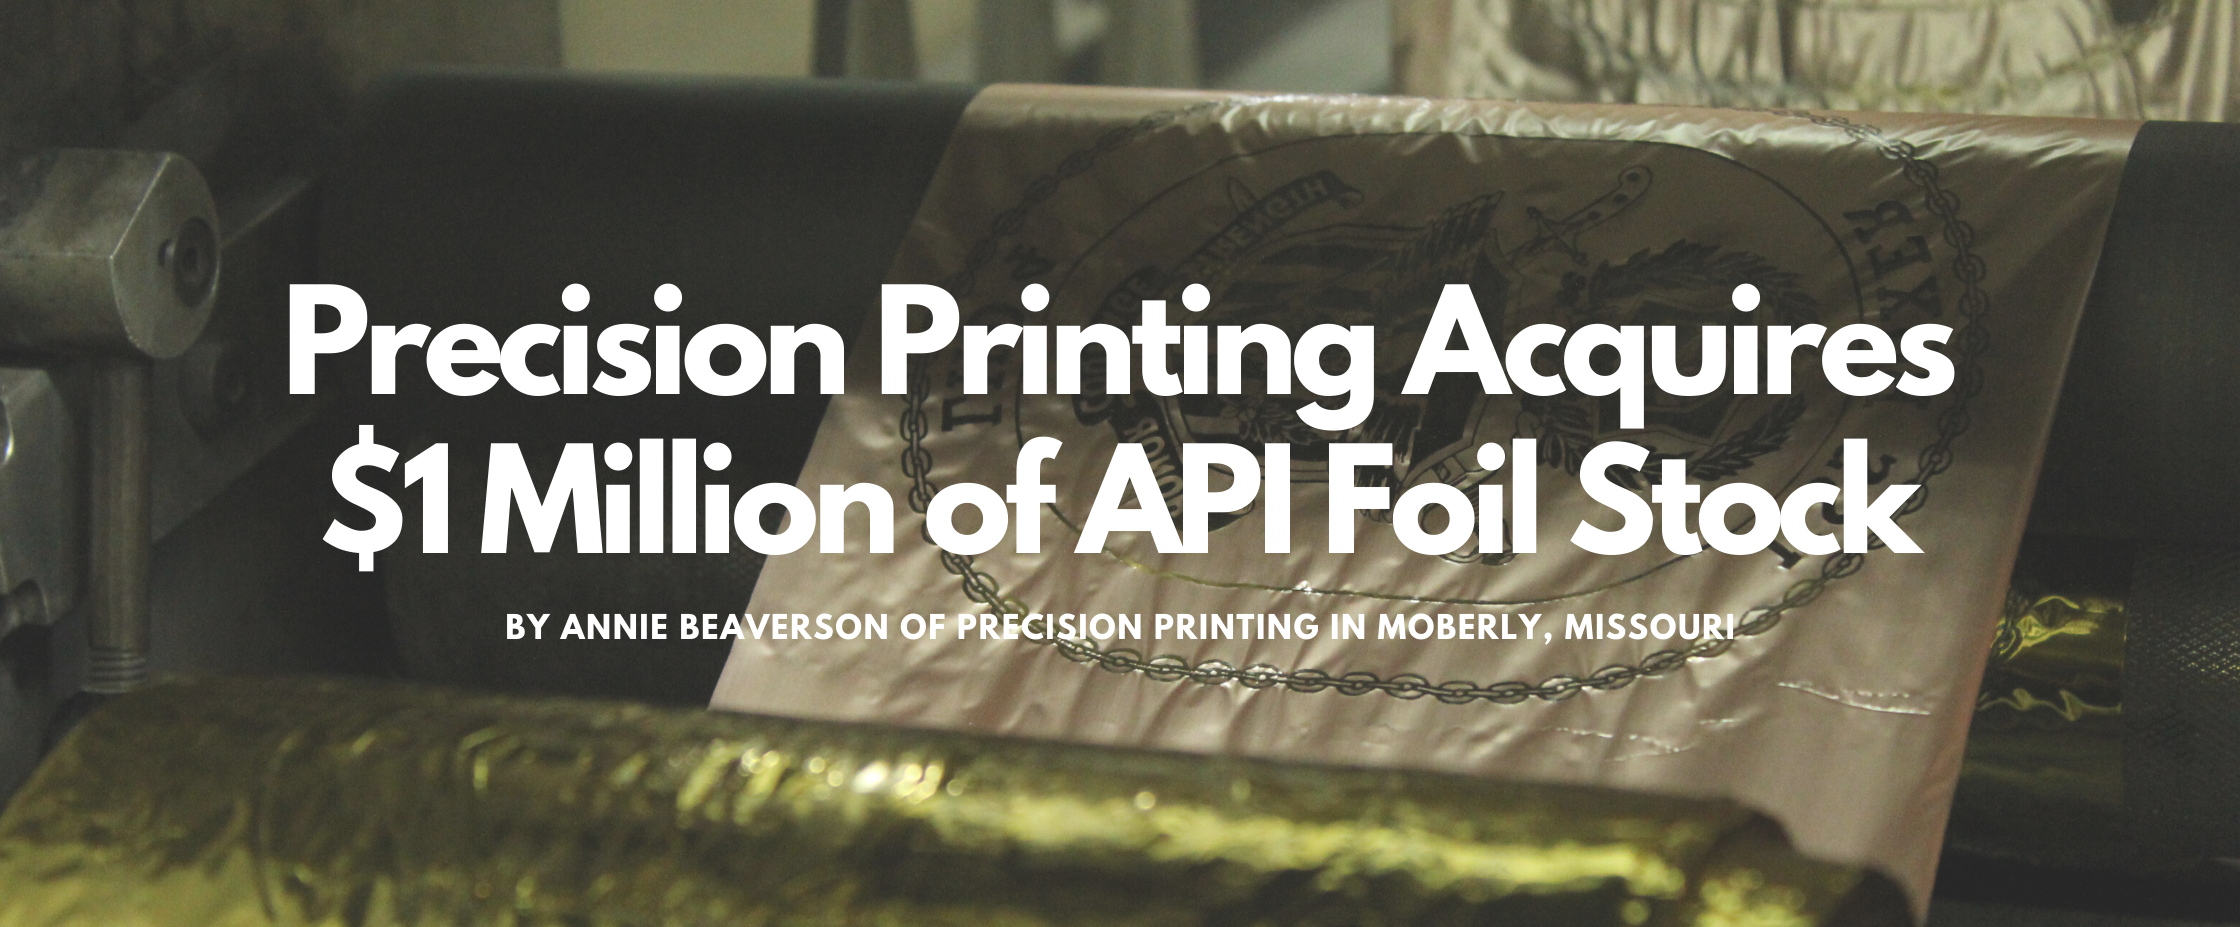 Precision Printing Acquires $1 Million of API Foil Stock